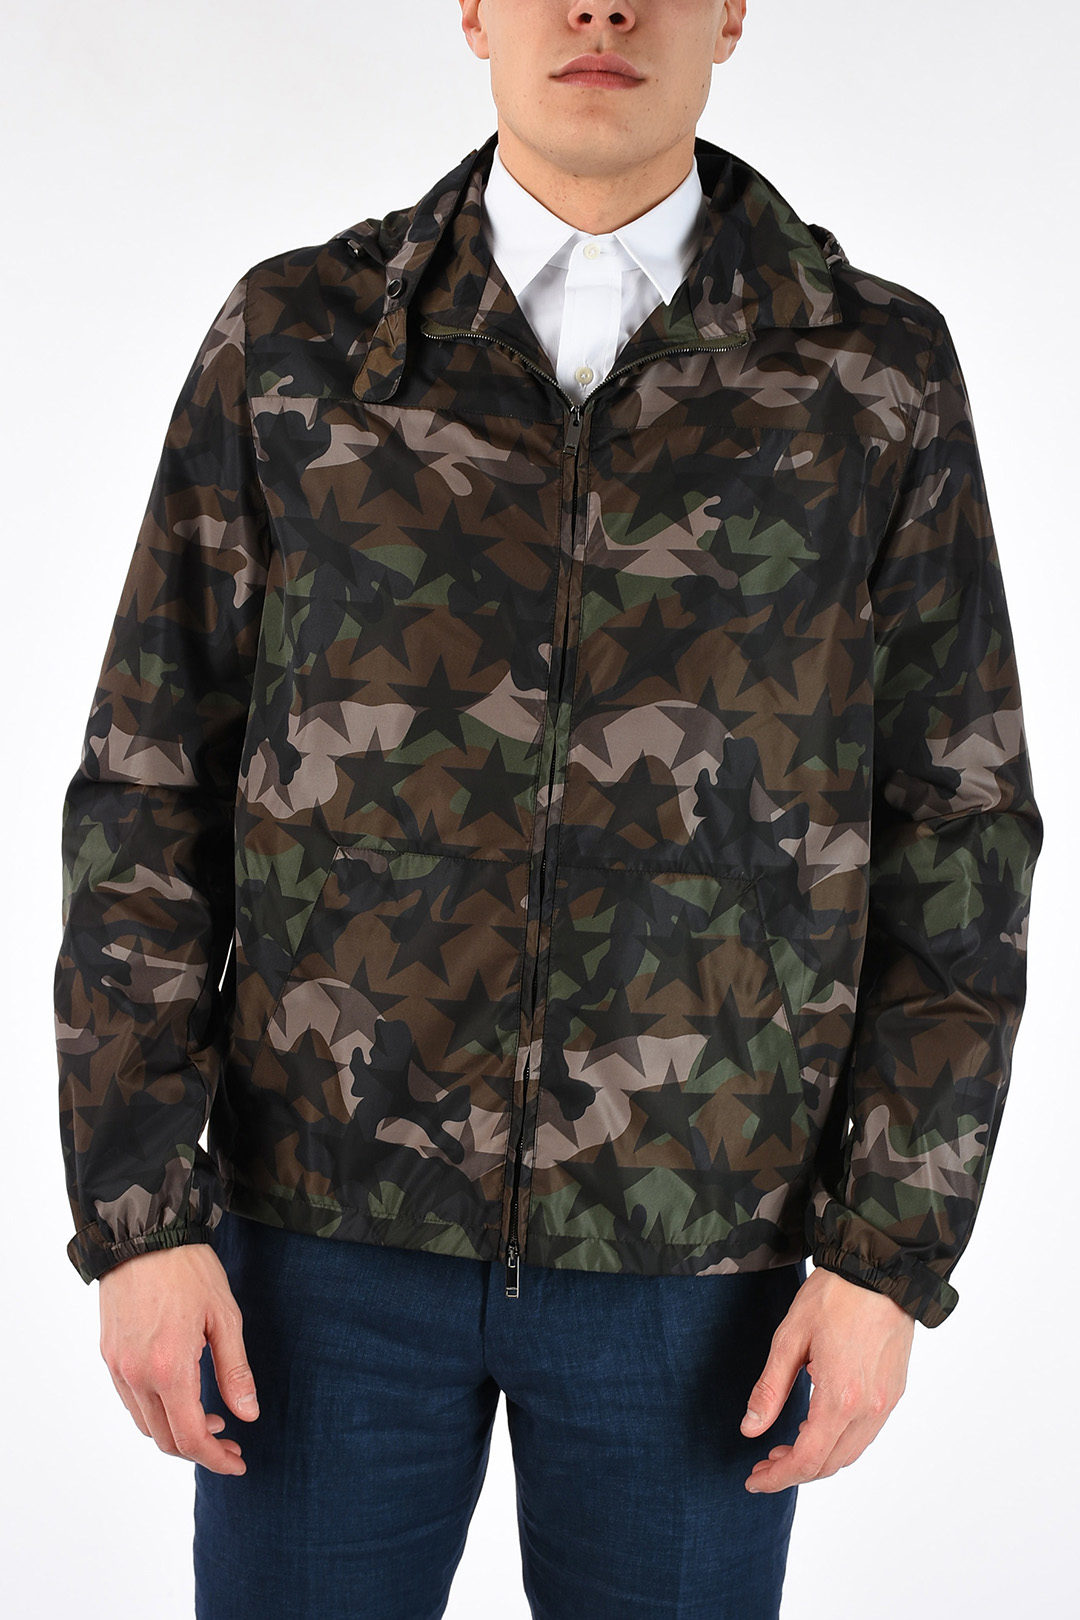 d42be535c4789 Valentino Camouflage Jacket with Stars men - Glamood Outlet